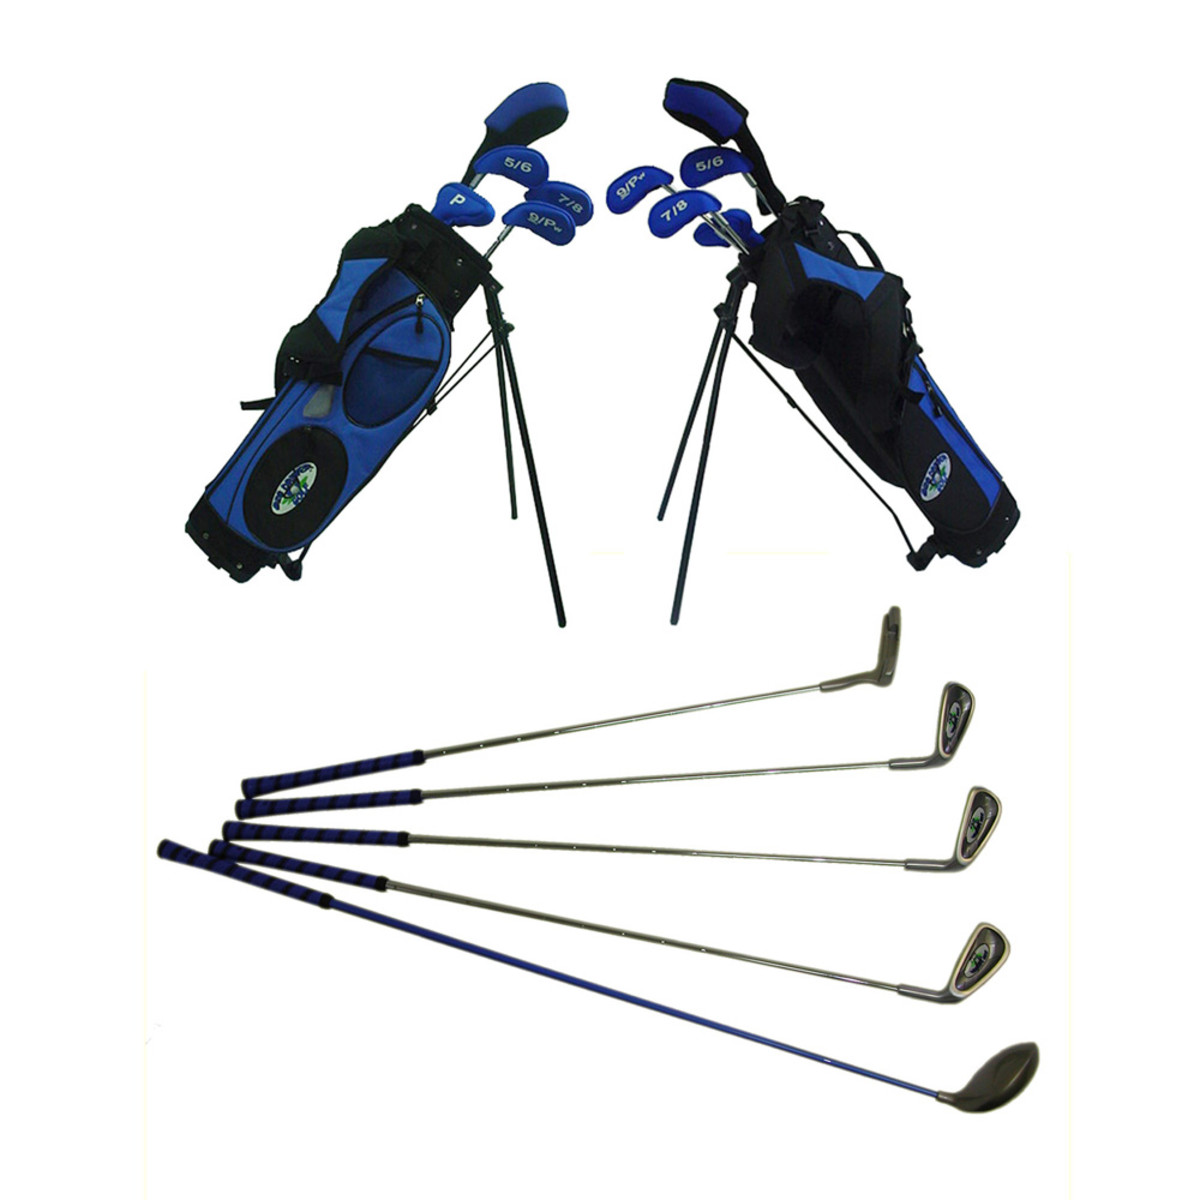 As your child gets more proficient at golf and grows, you will want to purchase a junior golf club set with more clubs. This Dexton Big Driver Junior Golf Set has a putter, 3 Wood, and a 5/6, 7 and 9 iron. The bag and club covers are also included.